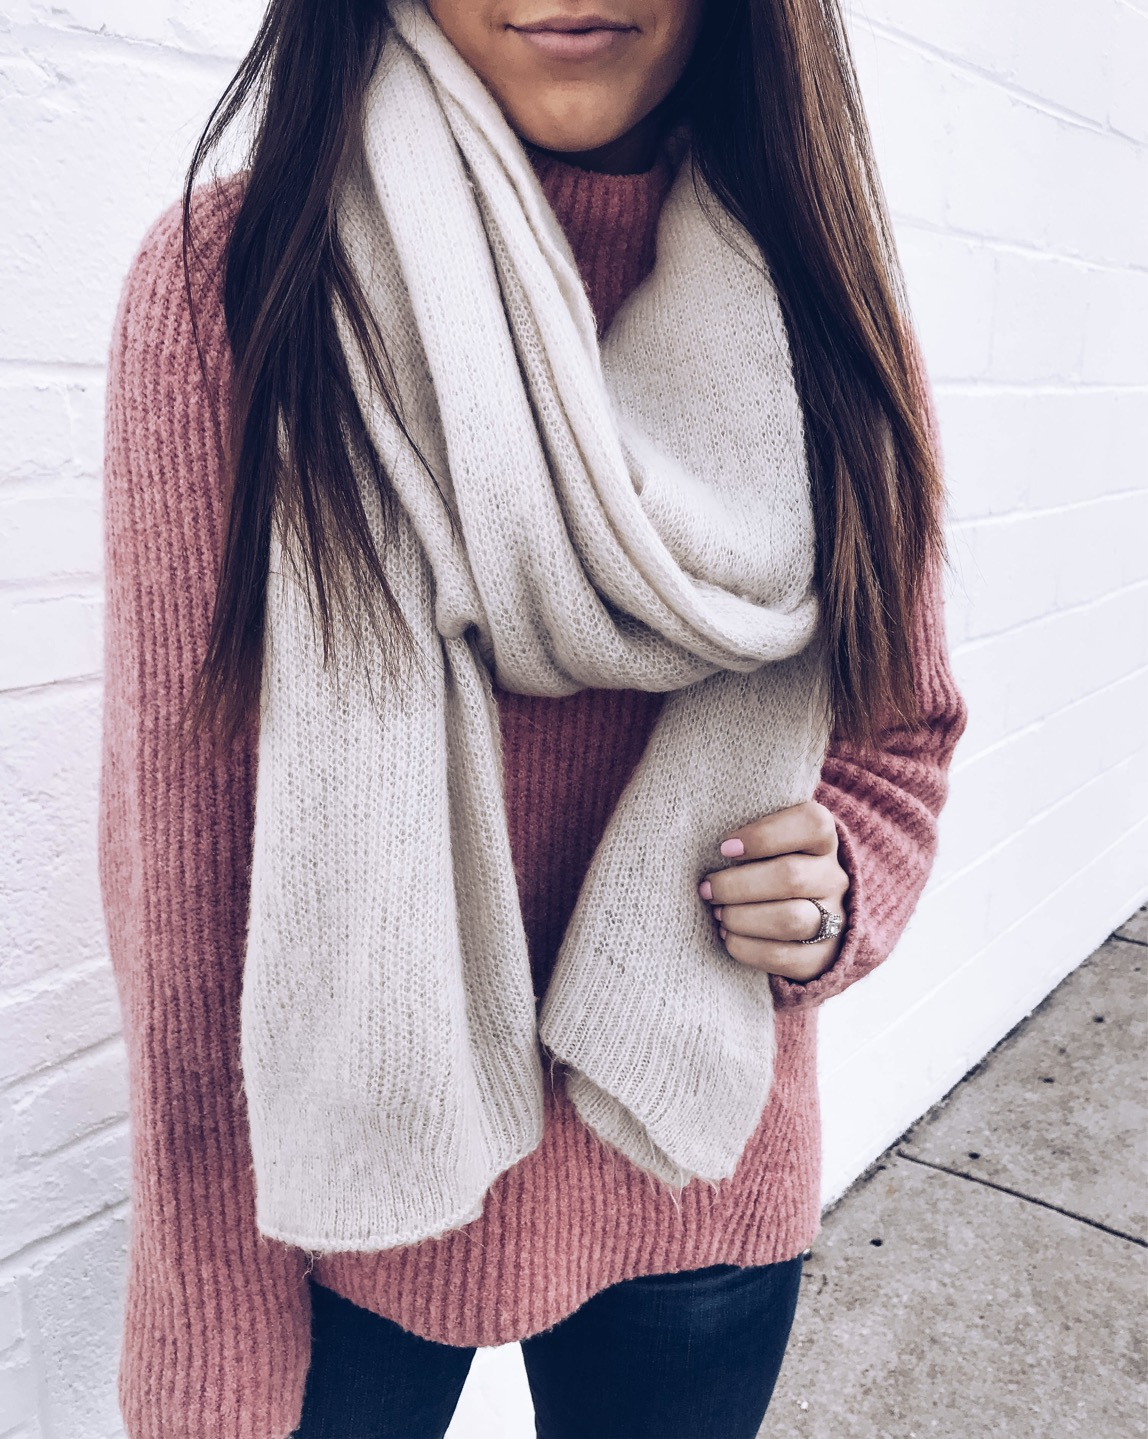 Instagram Round Up | Pine Barren Beauty | outfit of the day, winter outfit idea, winter fashion, free people scarf, madewell sweater, cozy vibes, cozy outfit idea